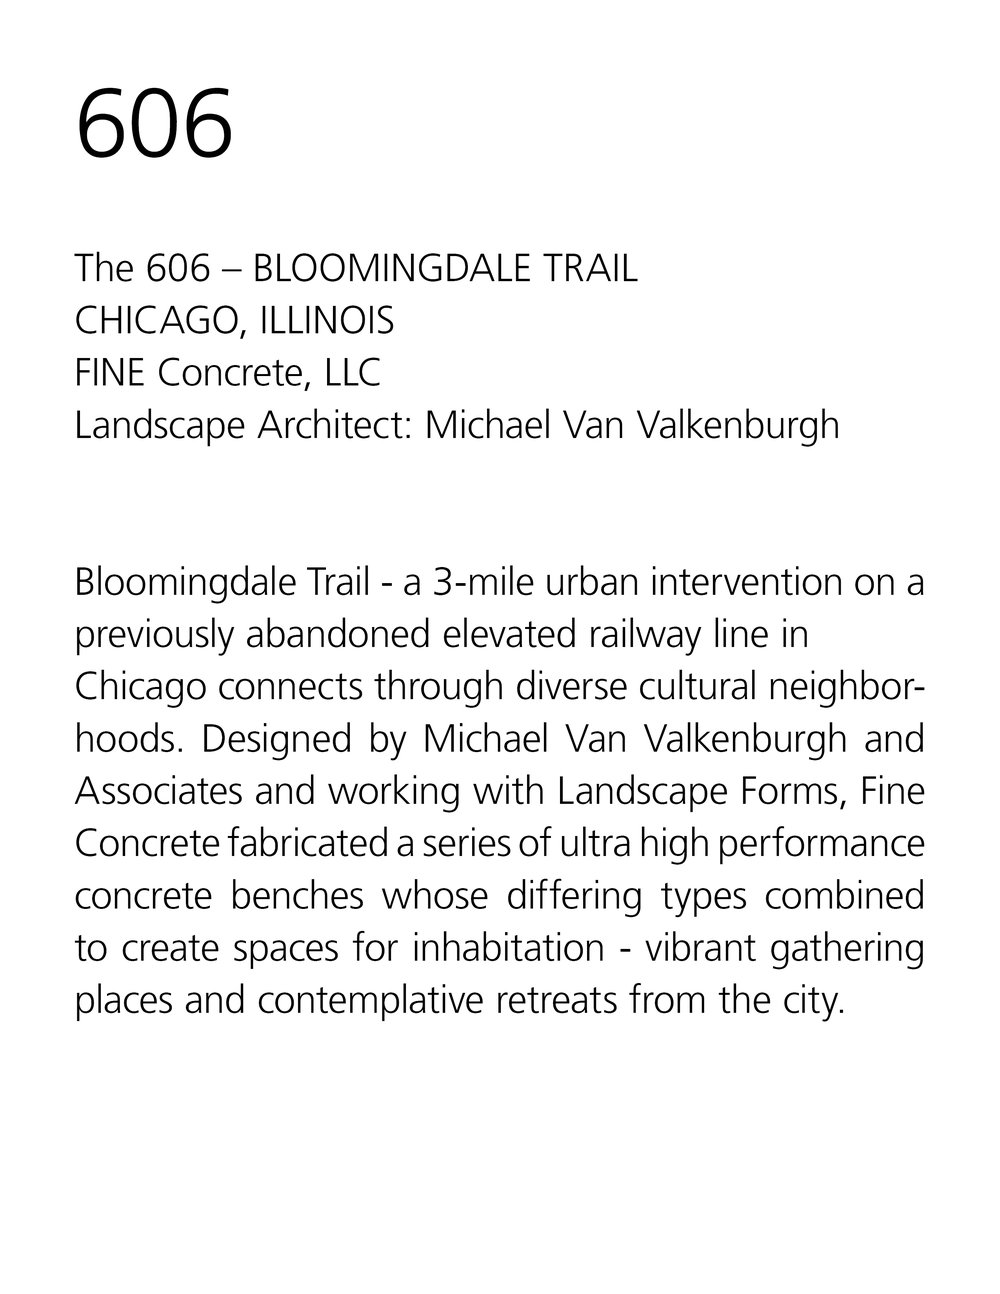 606 bloomingdale description.jpg